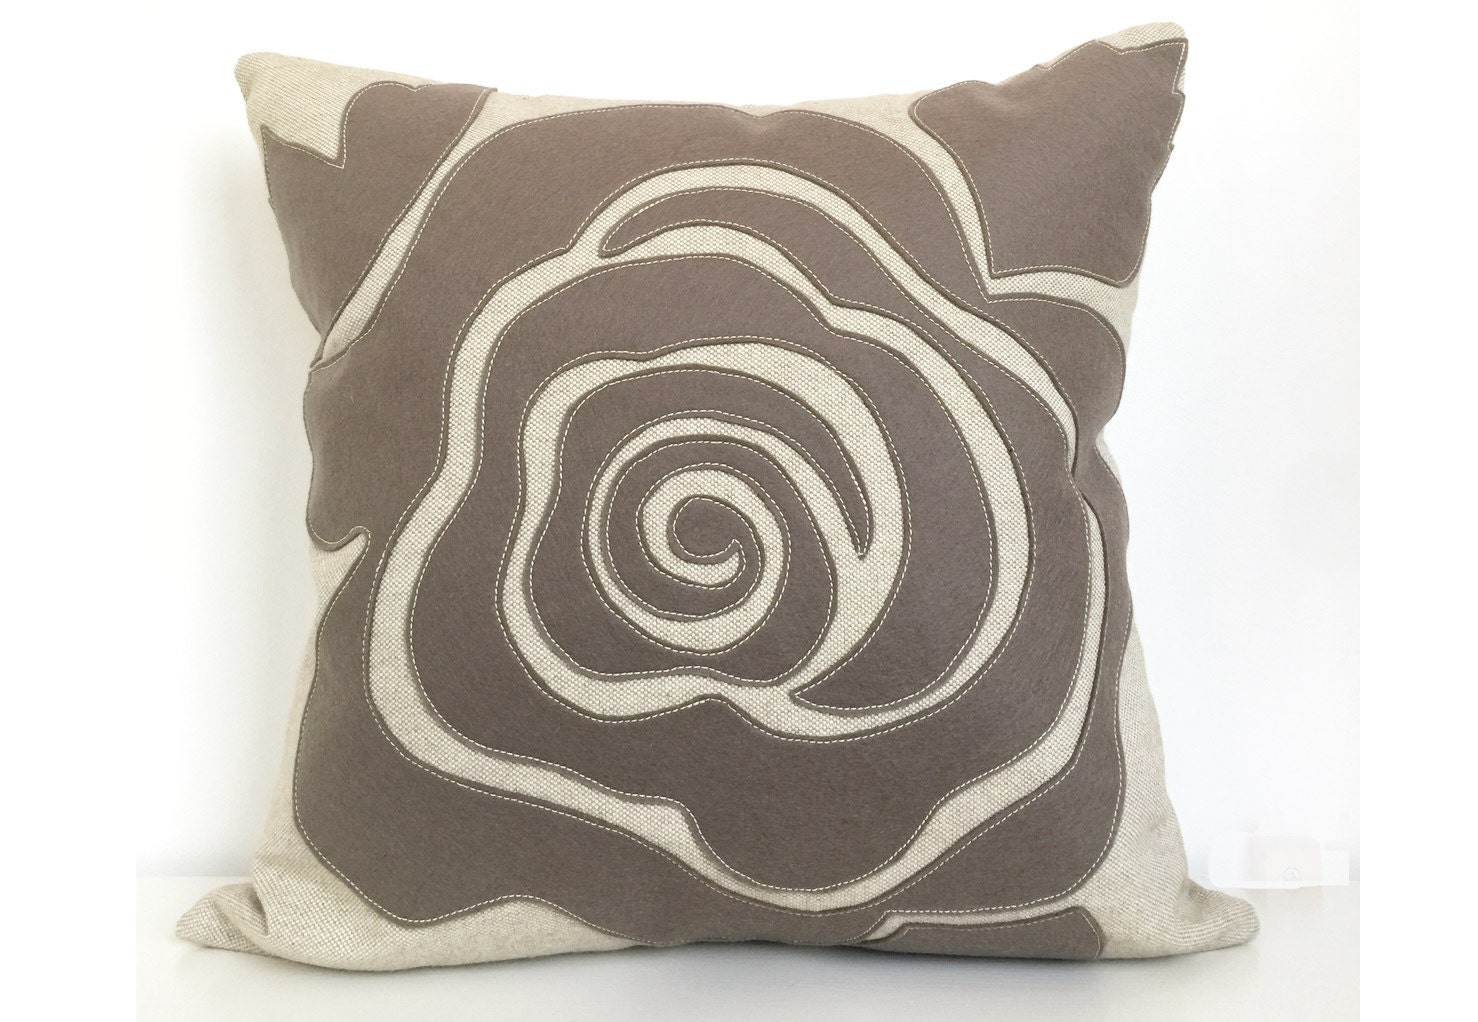 Modern Rose Petal Pillow in Warm Grey Beige Felt on Oatmeal